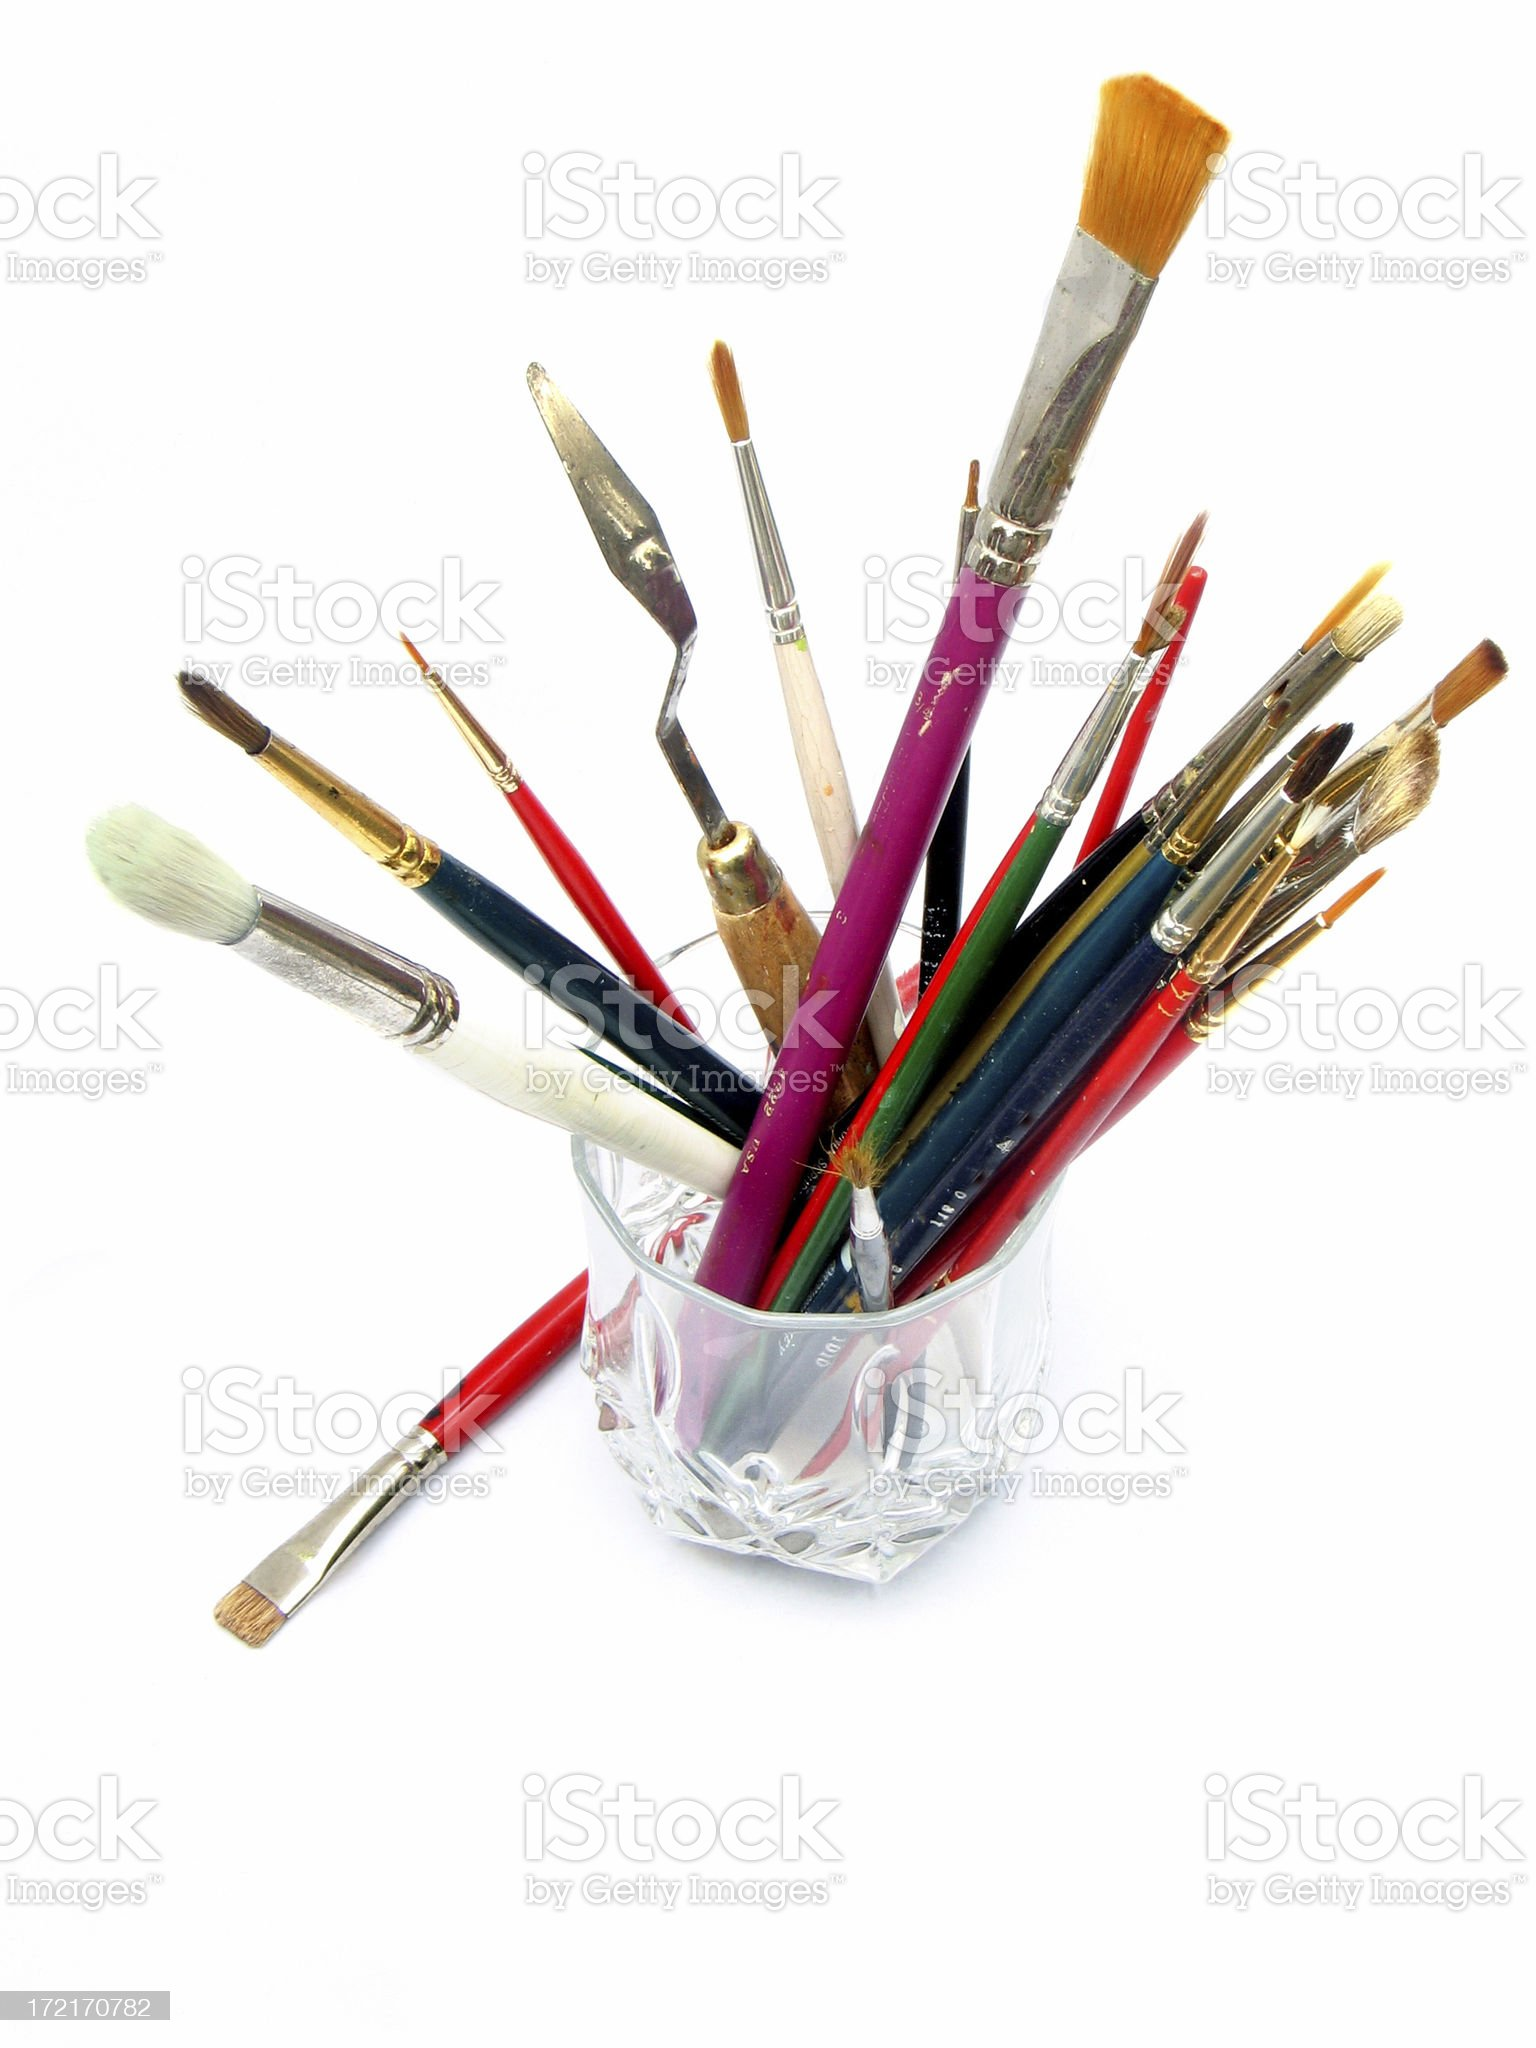 Artist's Brushes royalty-free stock photo